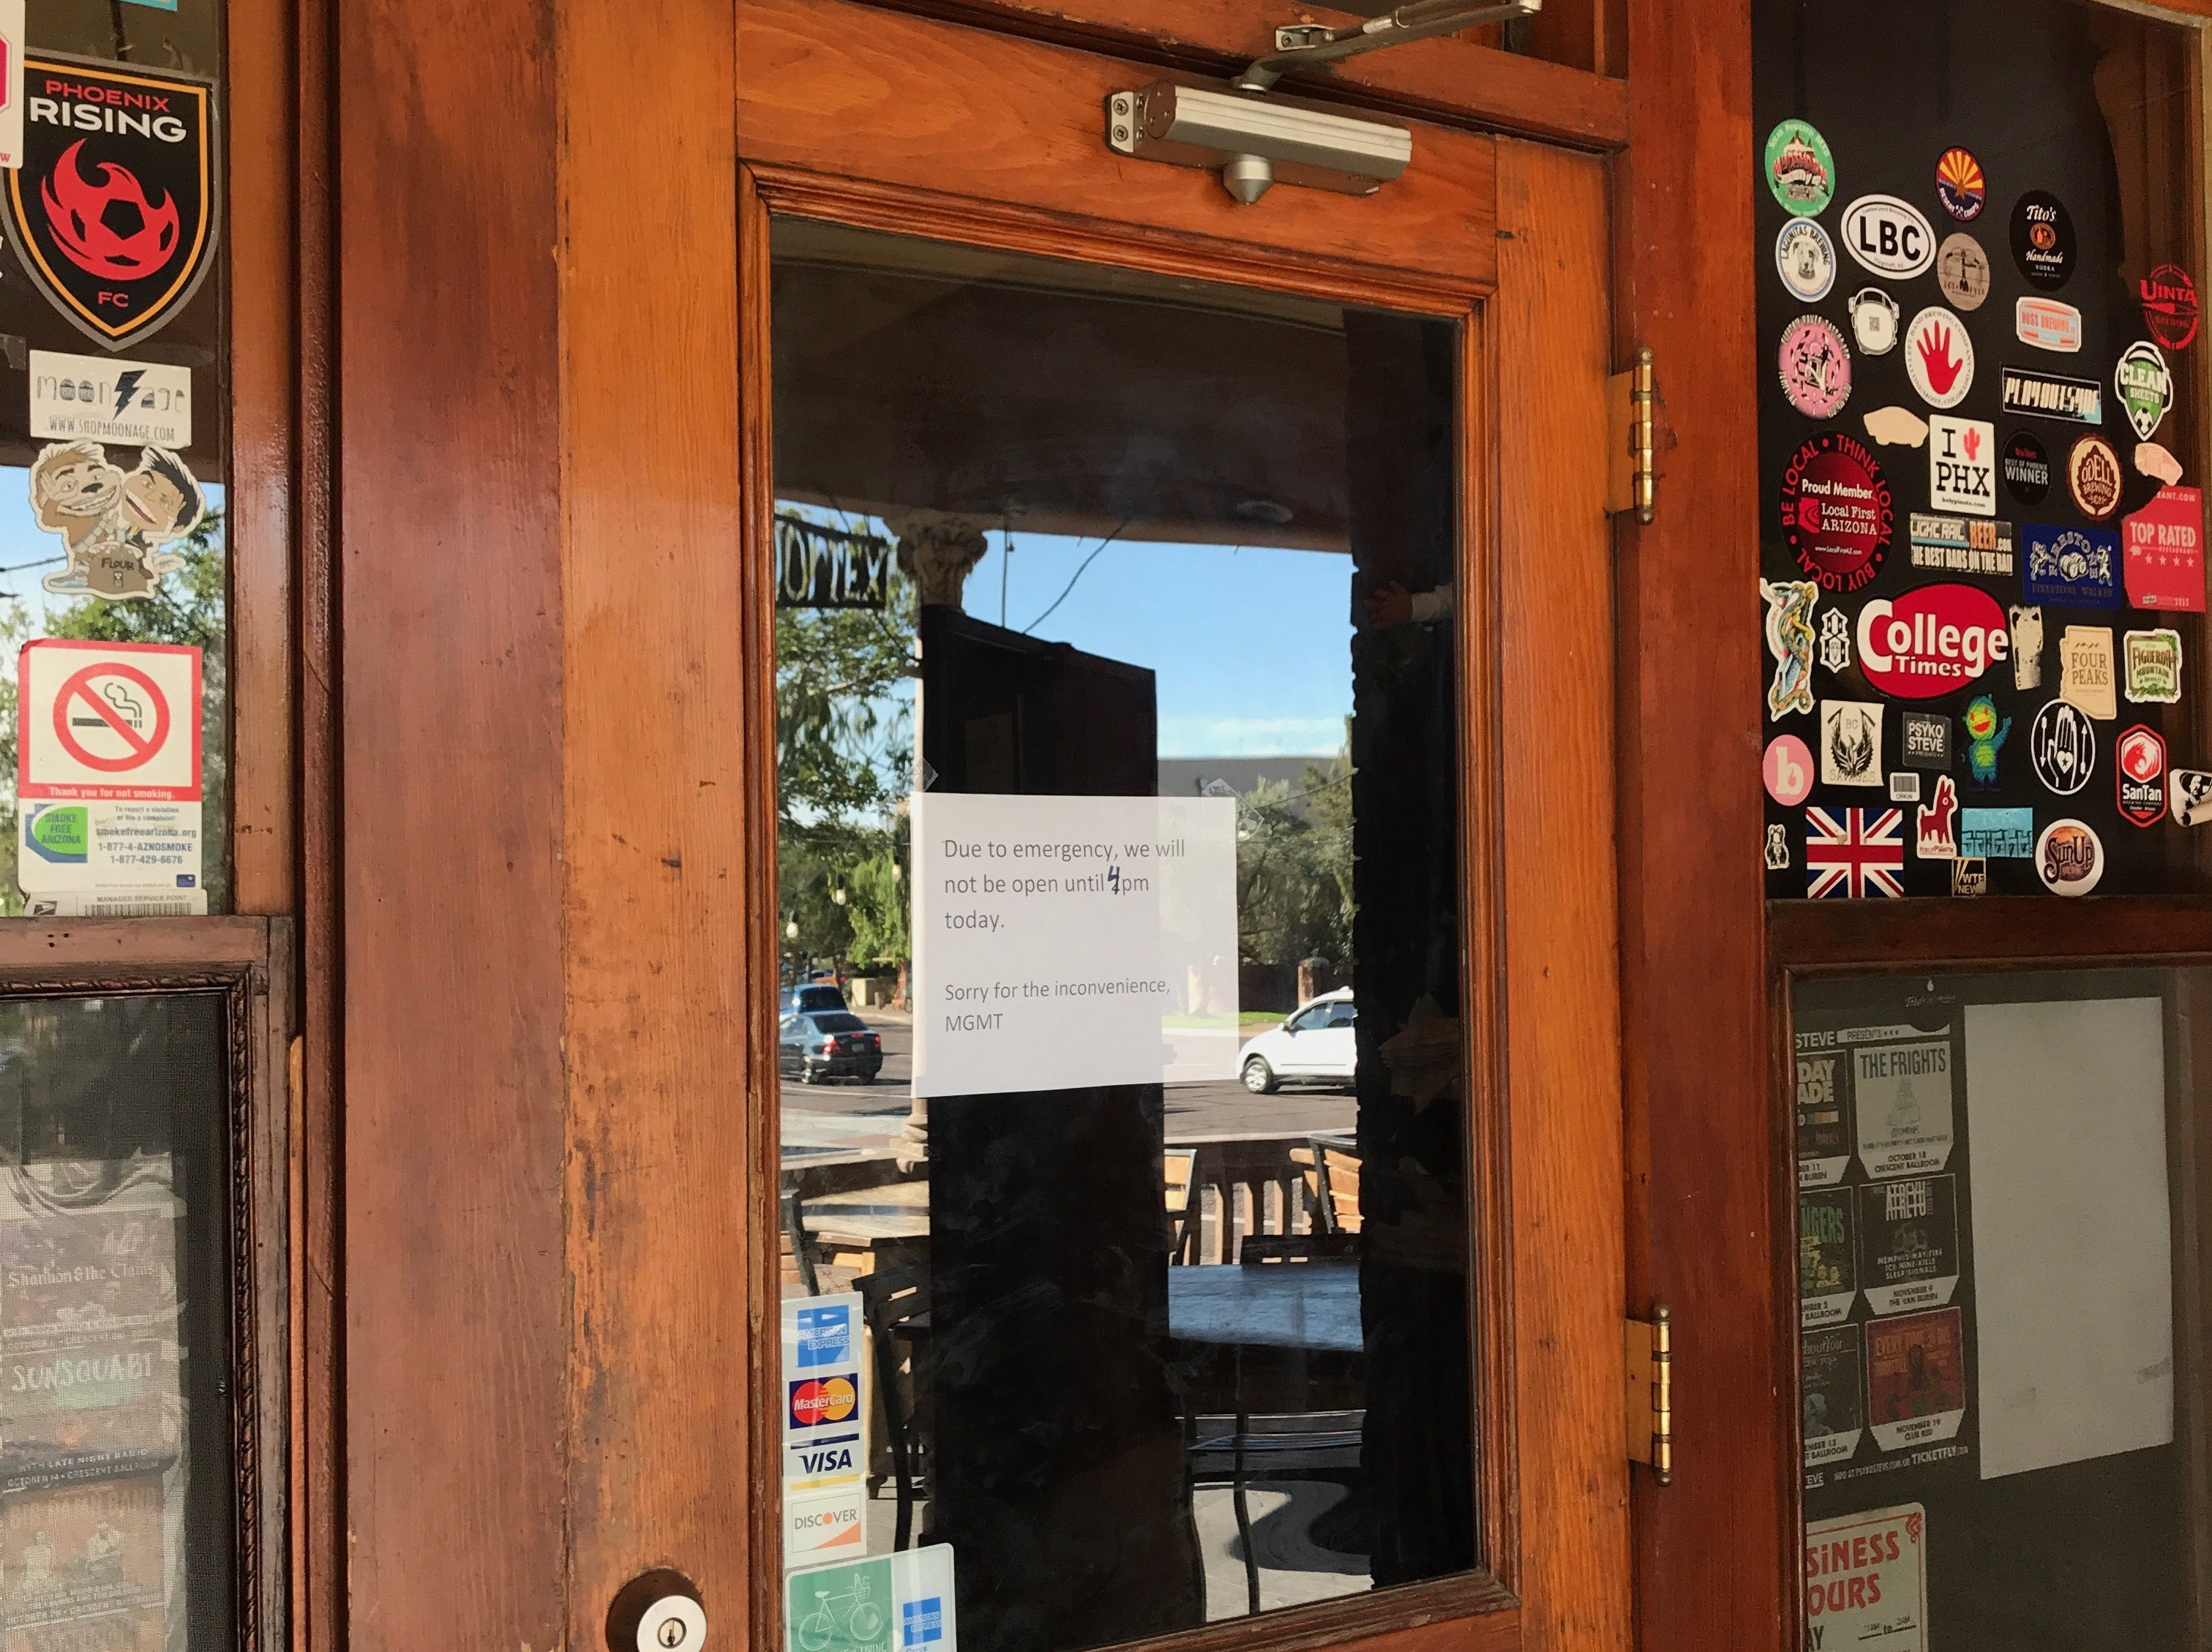 "A sign taped to the window of the door of The Rose & Crown Pub, 628 E. Adams St., Phoenix, on Oct. 31, 2018, reads: ""Due to emergency, we will not be open until 4 p.m. today. Sorry for the inconvenience, MGMT."""